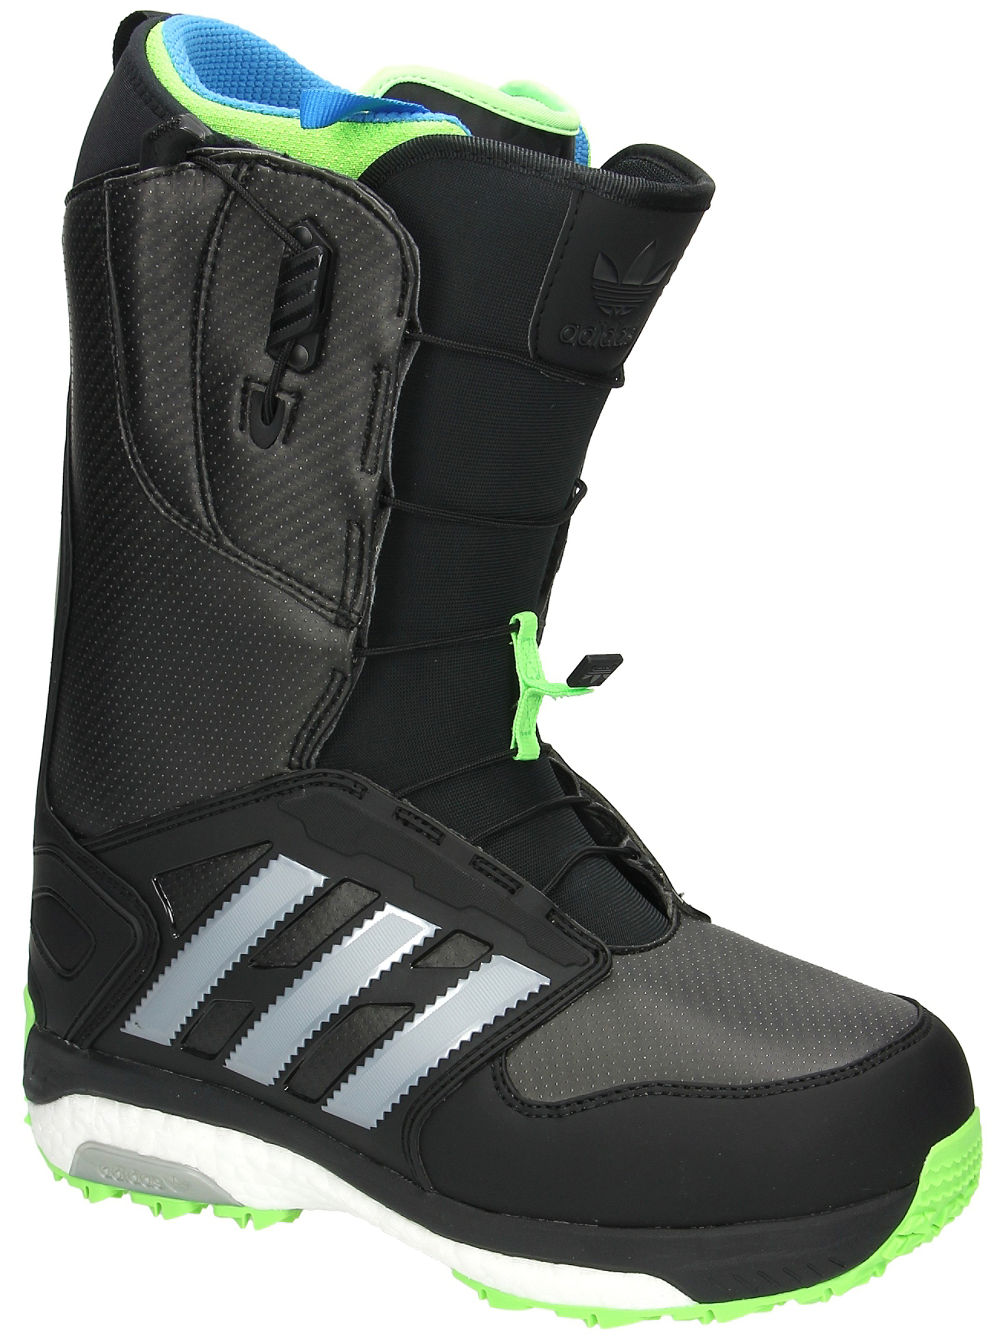 e4c9058c9d931 Buy adidas Snowboarding Energy Boost online at Blue Tomato